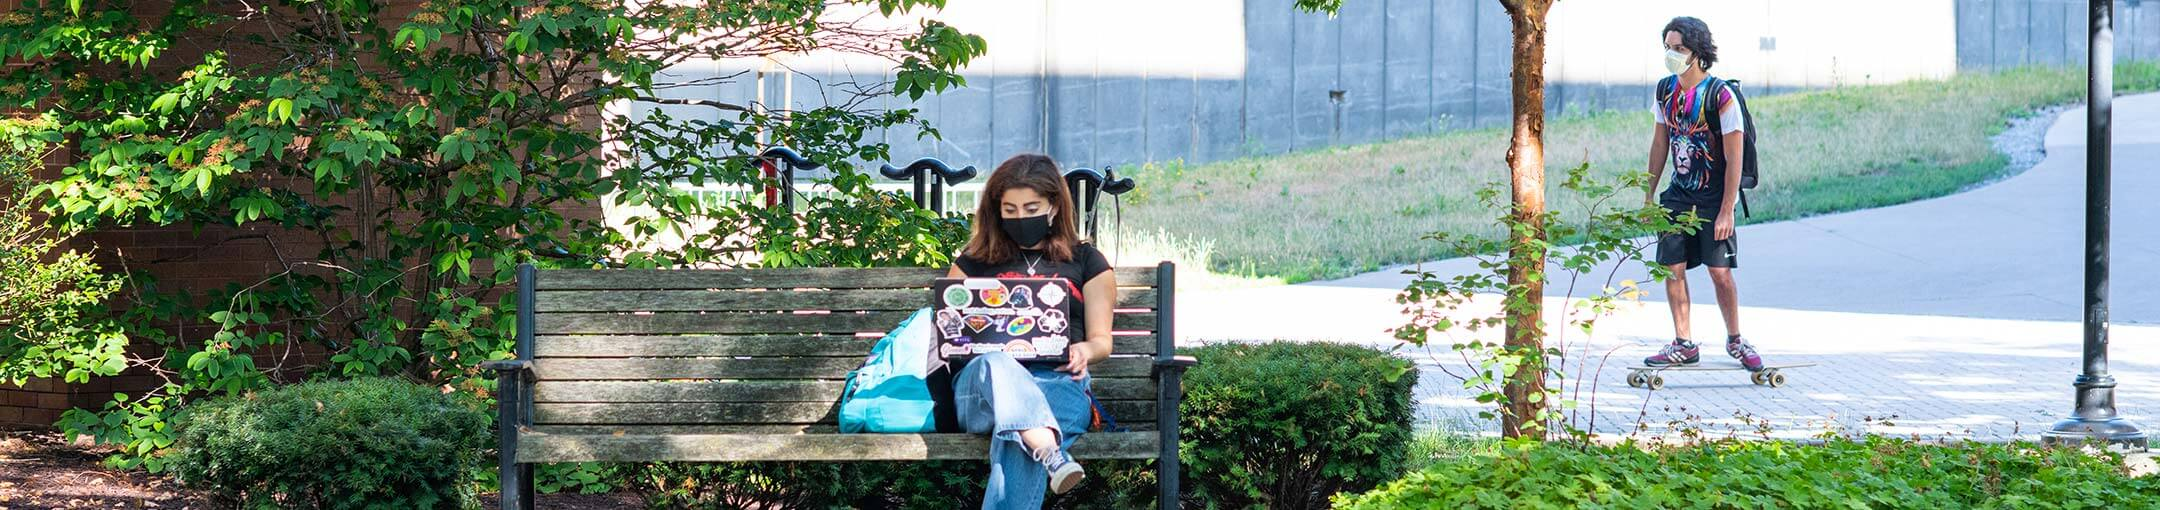 A student sits outside on a bench under a tree.